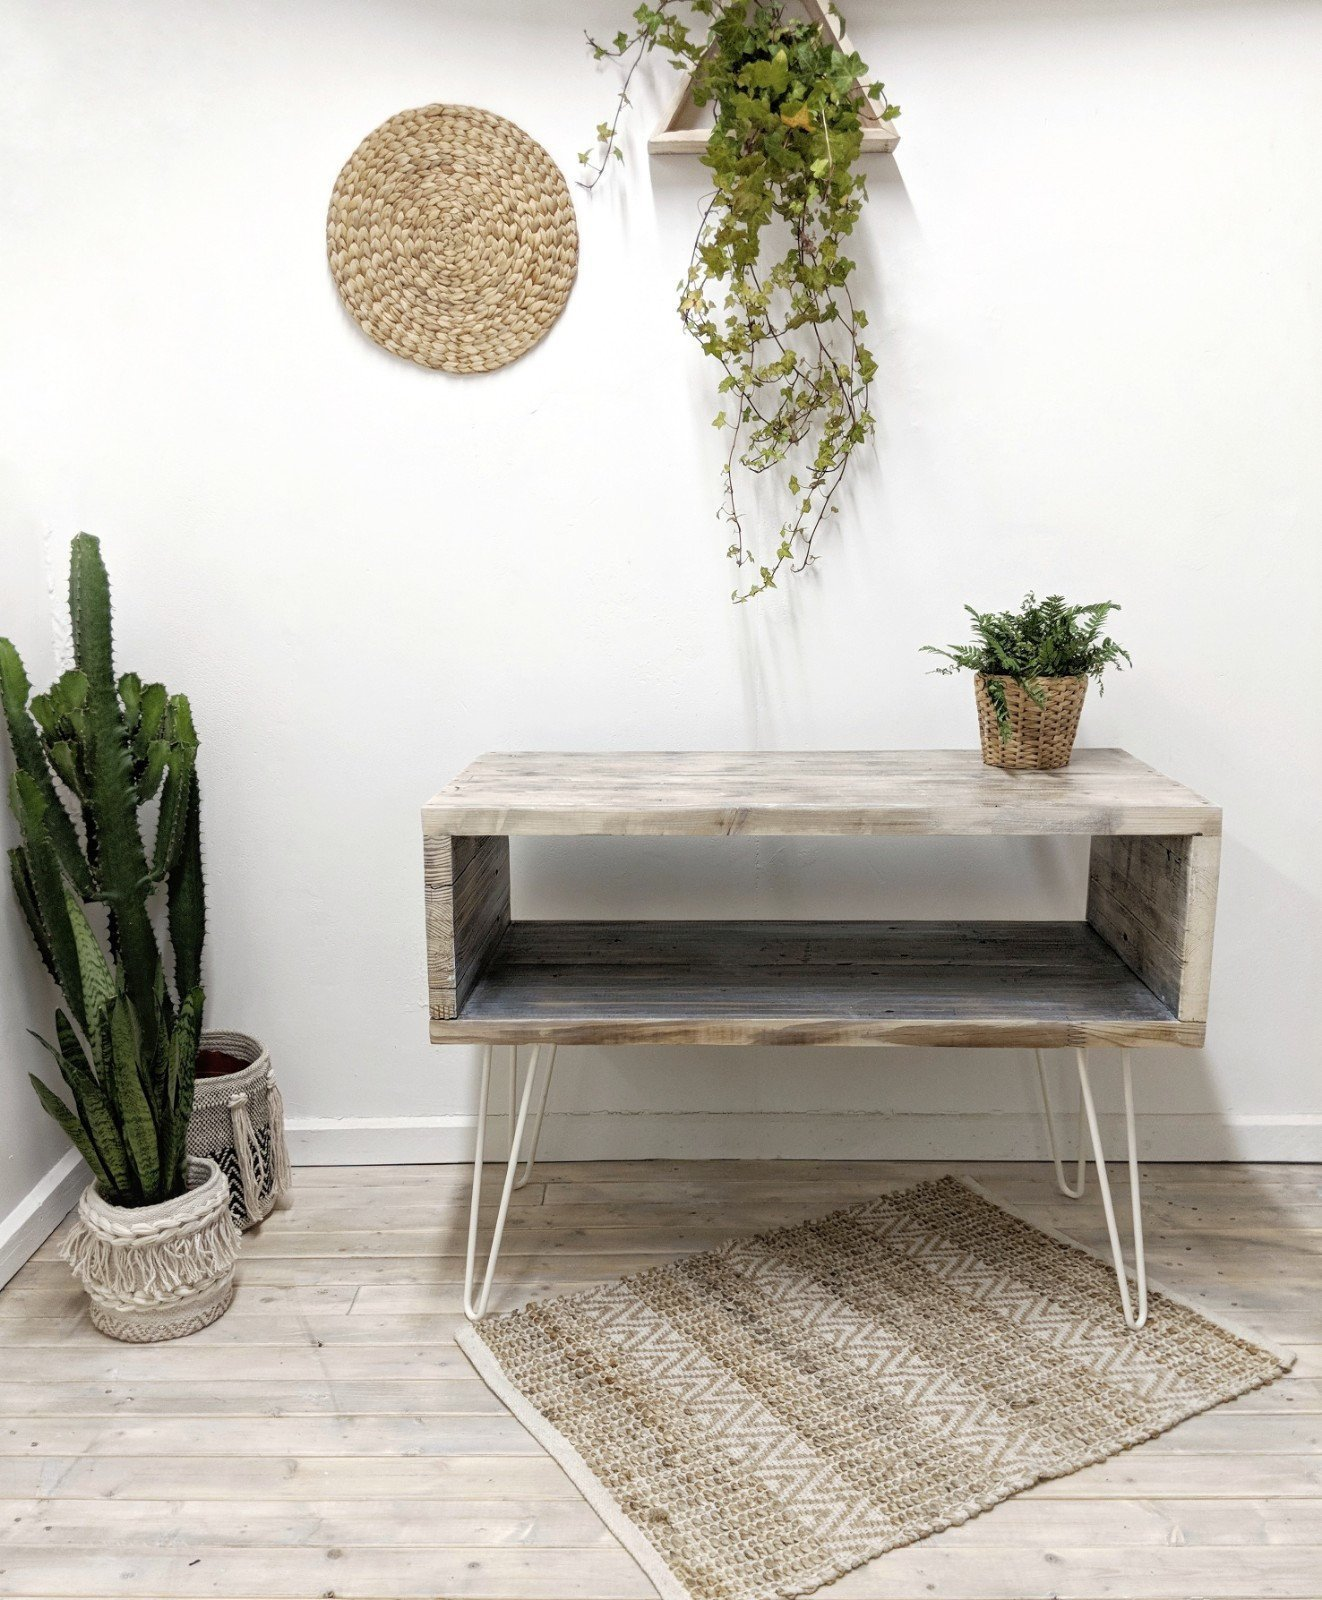 Reclaimed Wood Sideboard Ava In Driftwood Finish Rustic Storage Media Cabinet Table Boho Living Room Characterful Wood Rustic Design